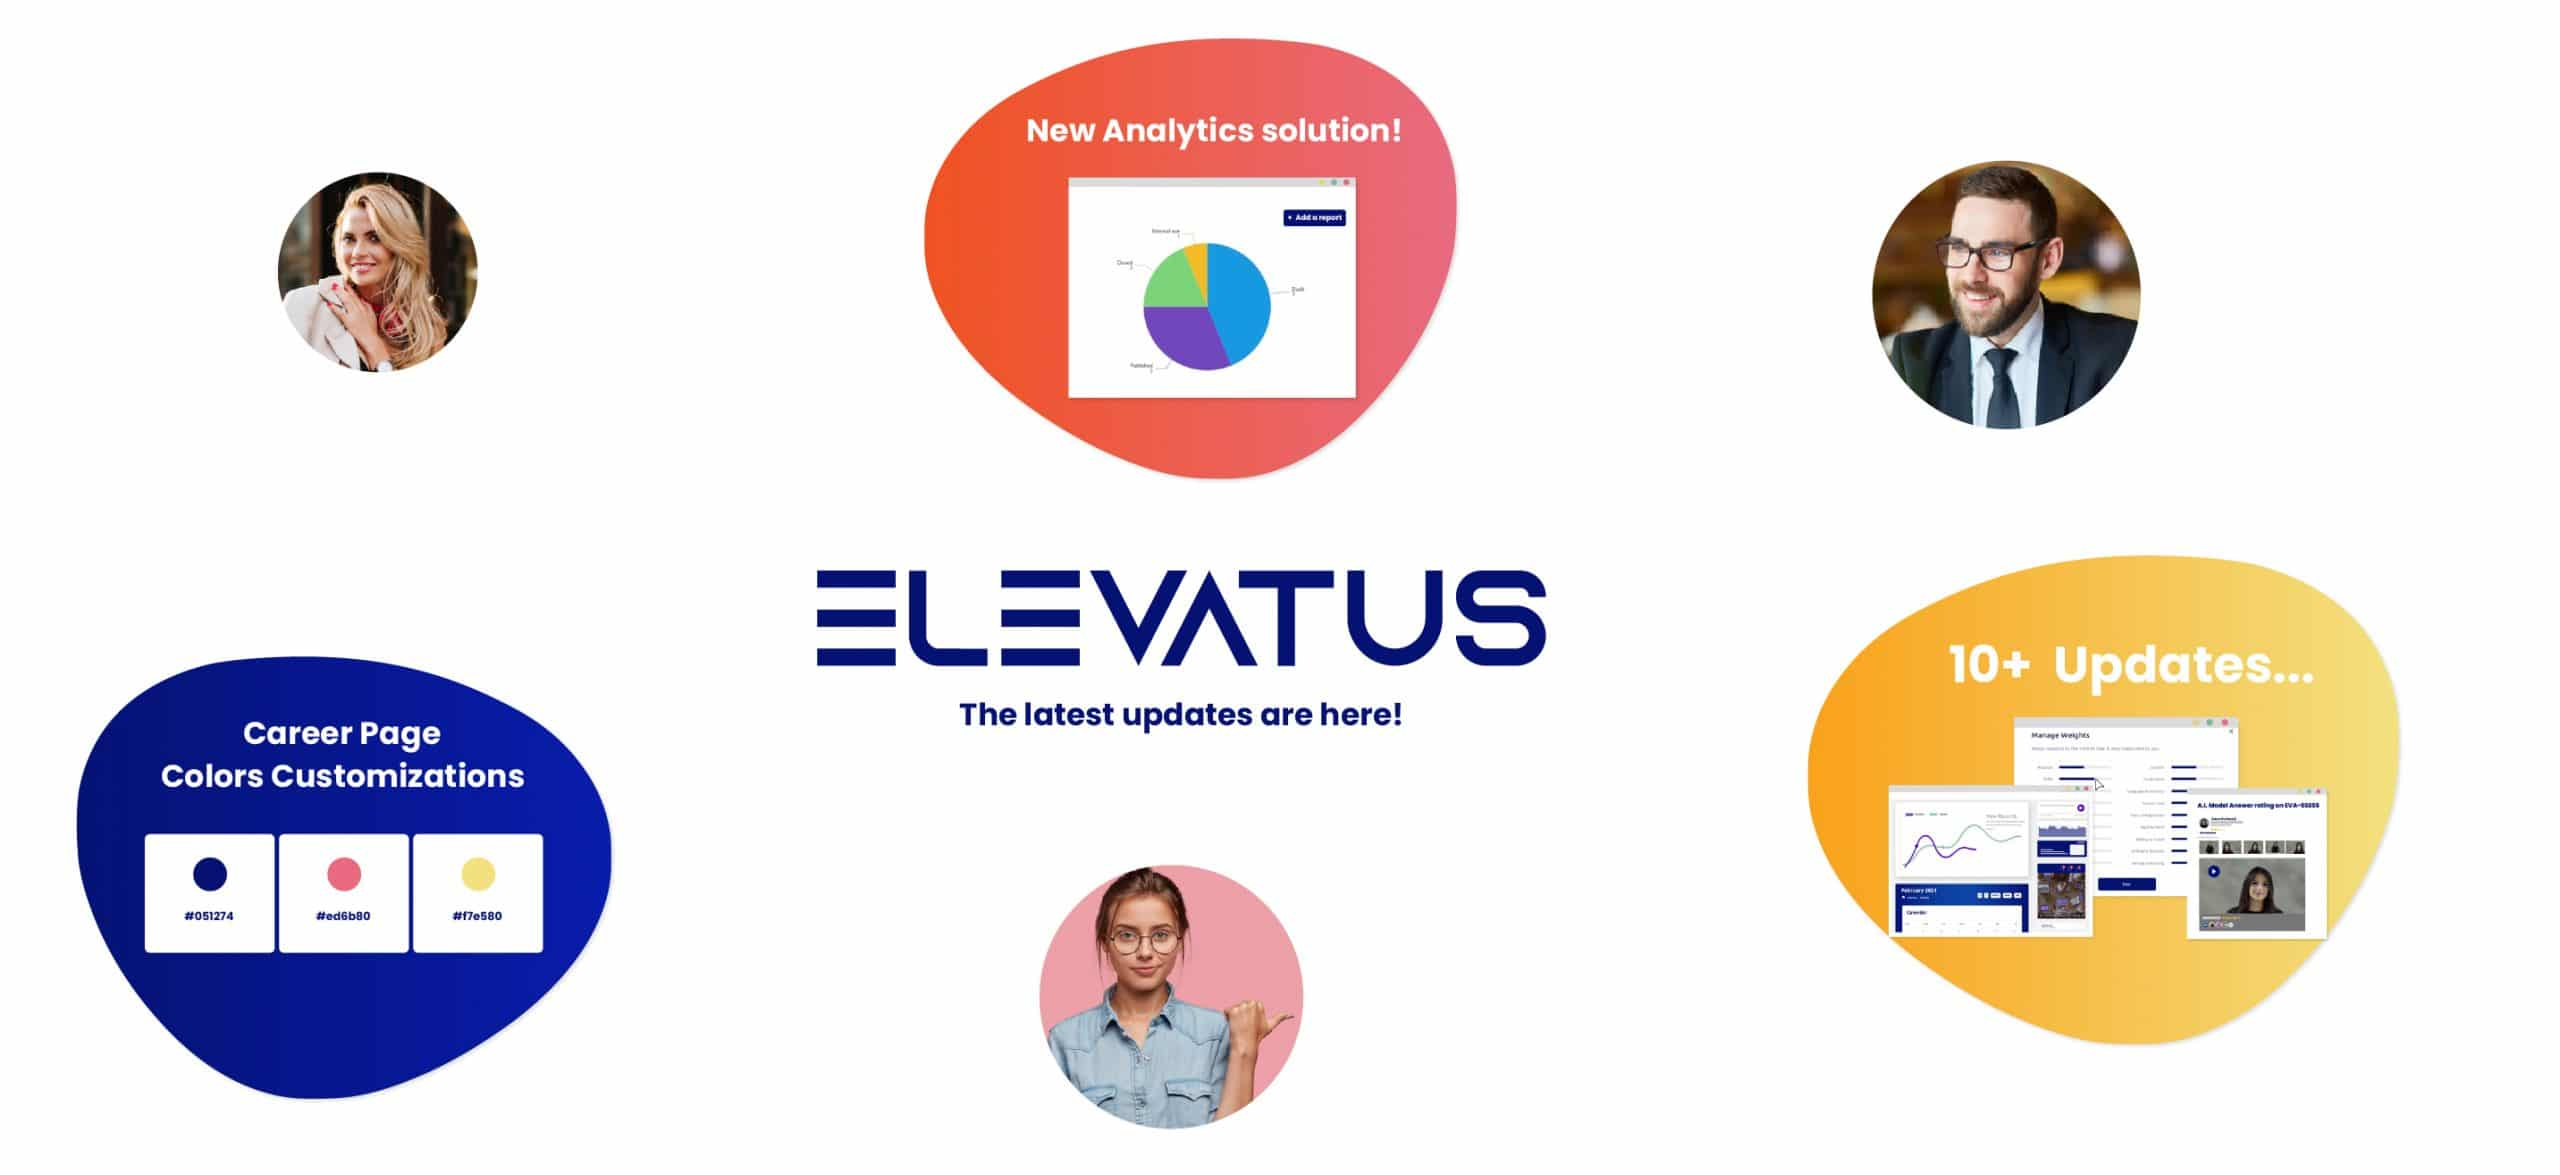 Elevatus new updates and features